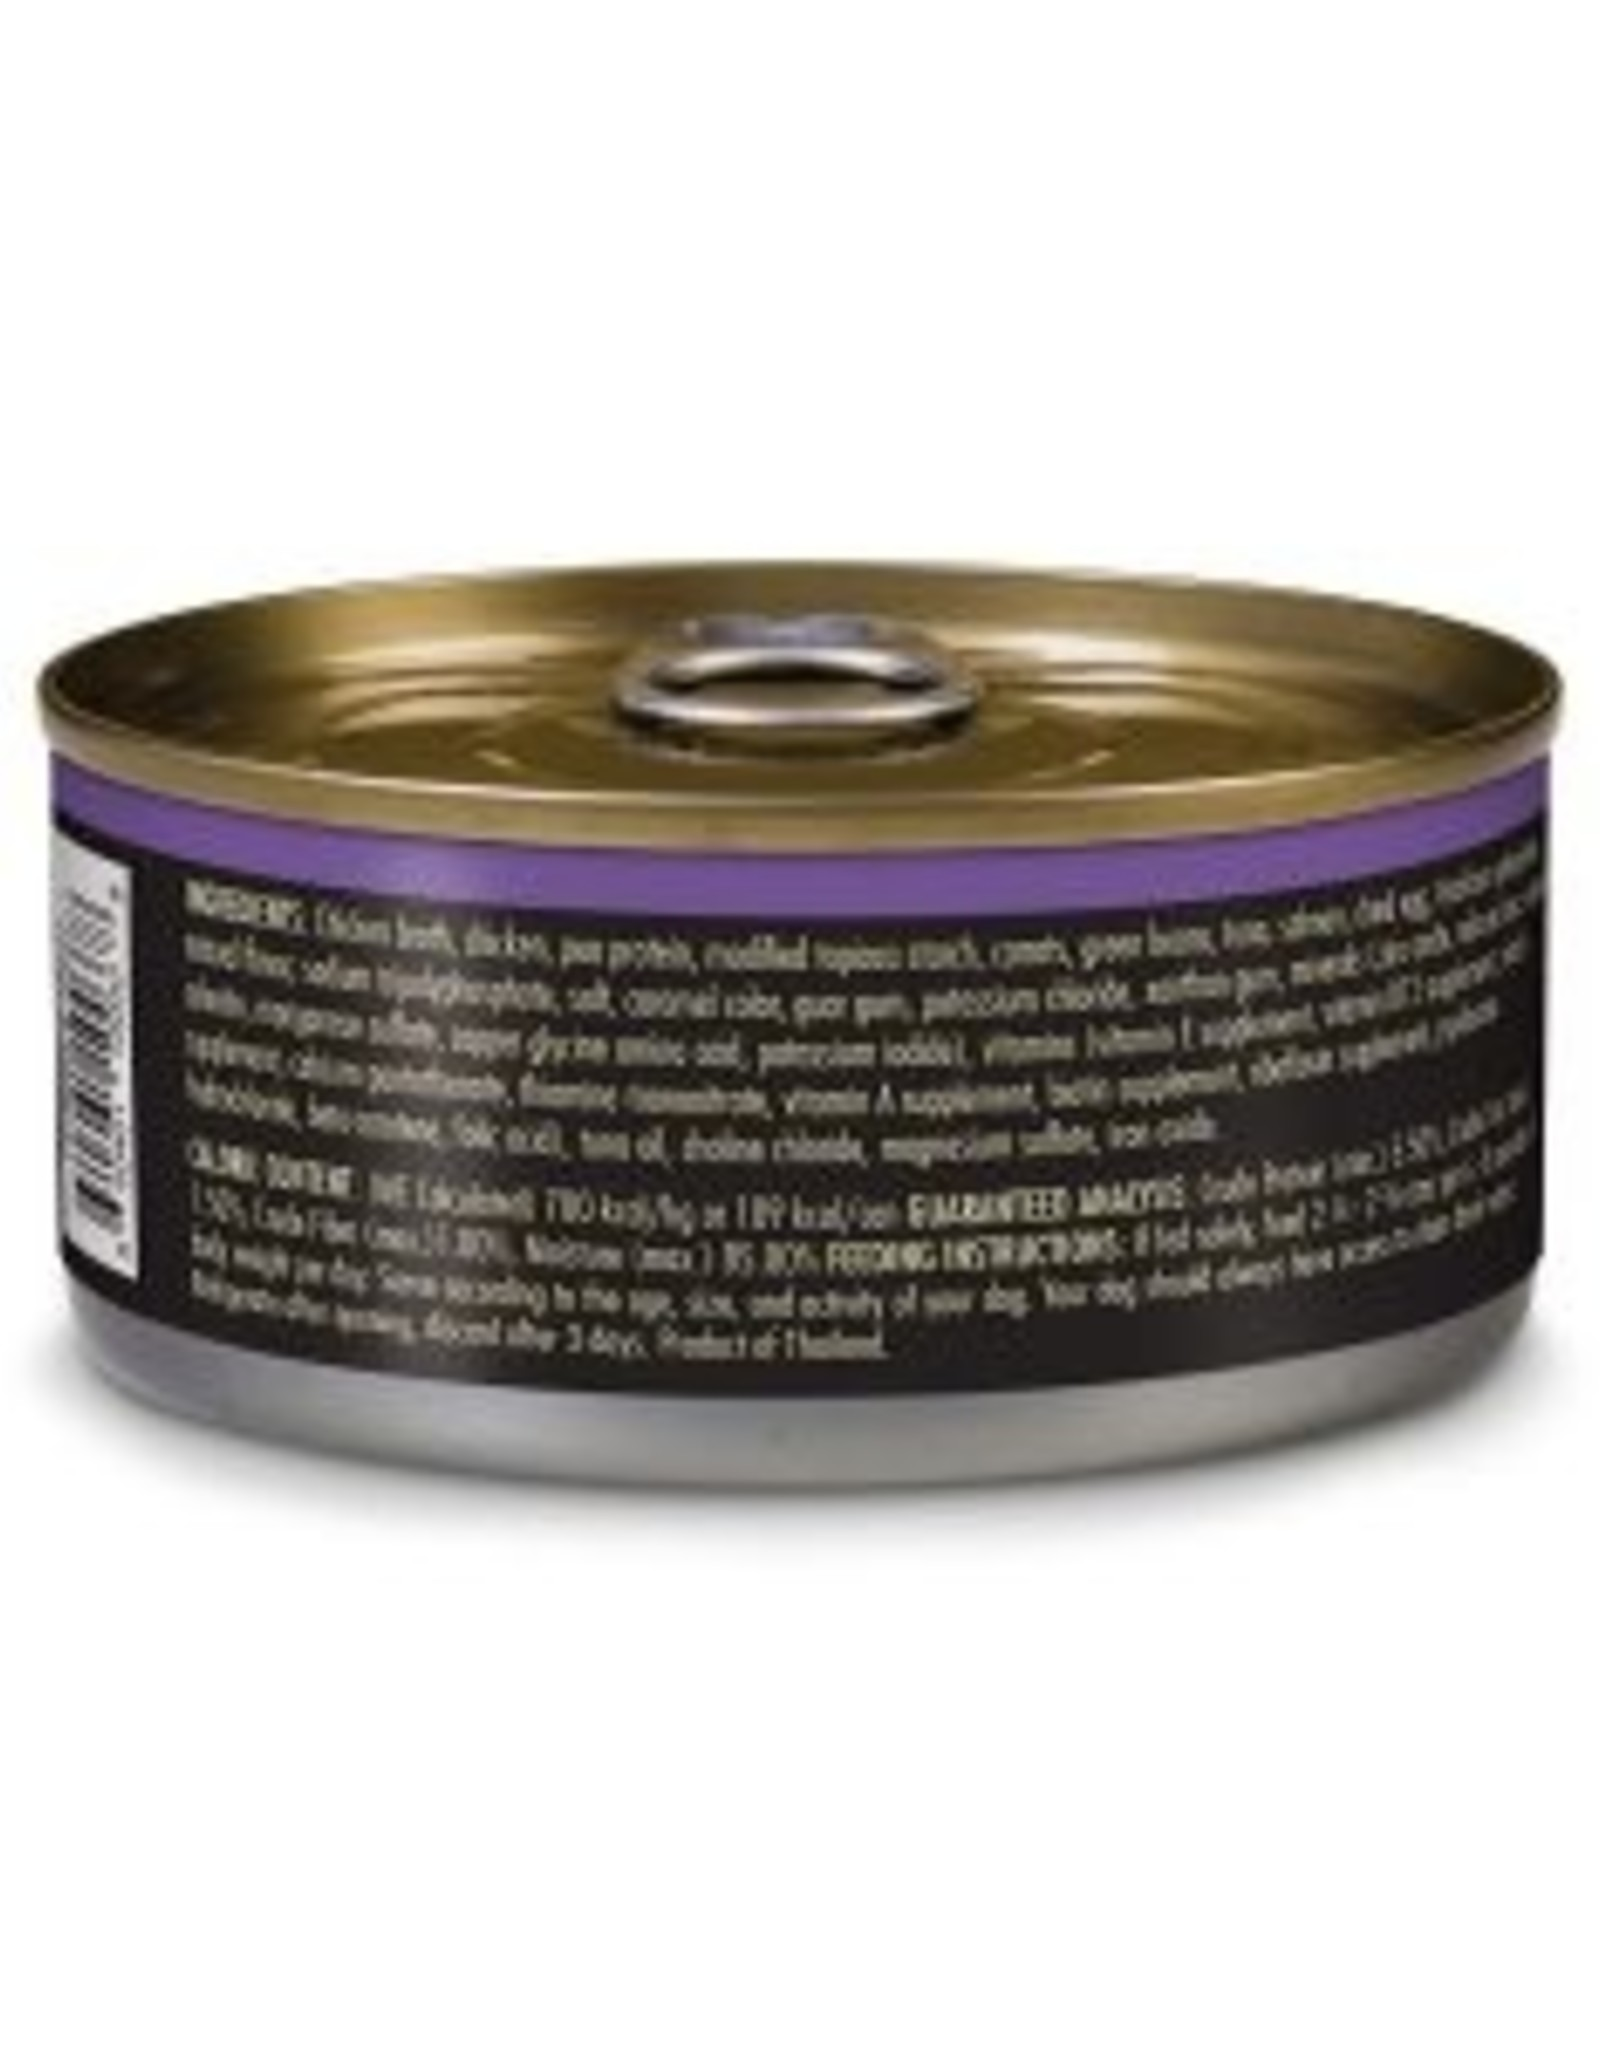 CANIDAE PET FOODS CANIDAE CAN DOG SMALL BREED CHICKEN, TUNA & SALMON IN GRAVY 5.5OZ CASE OF 24